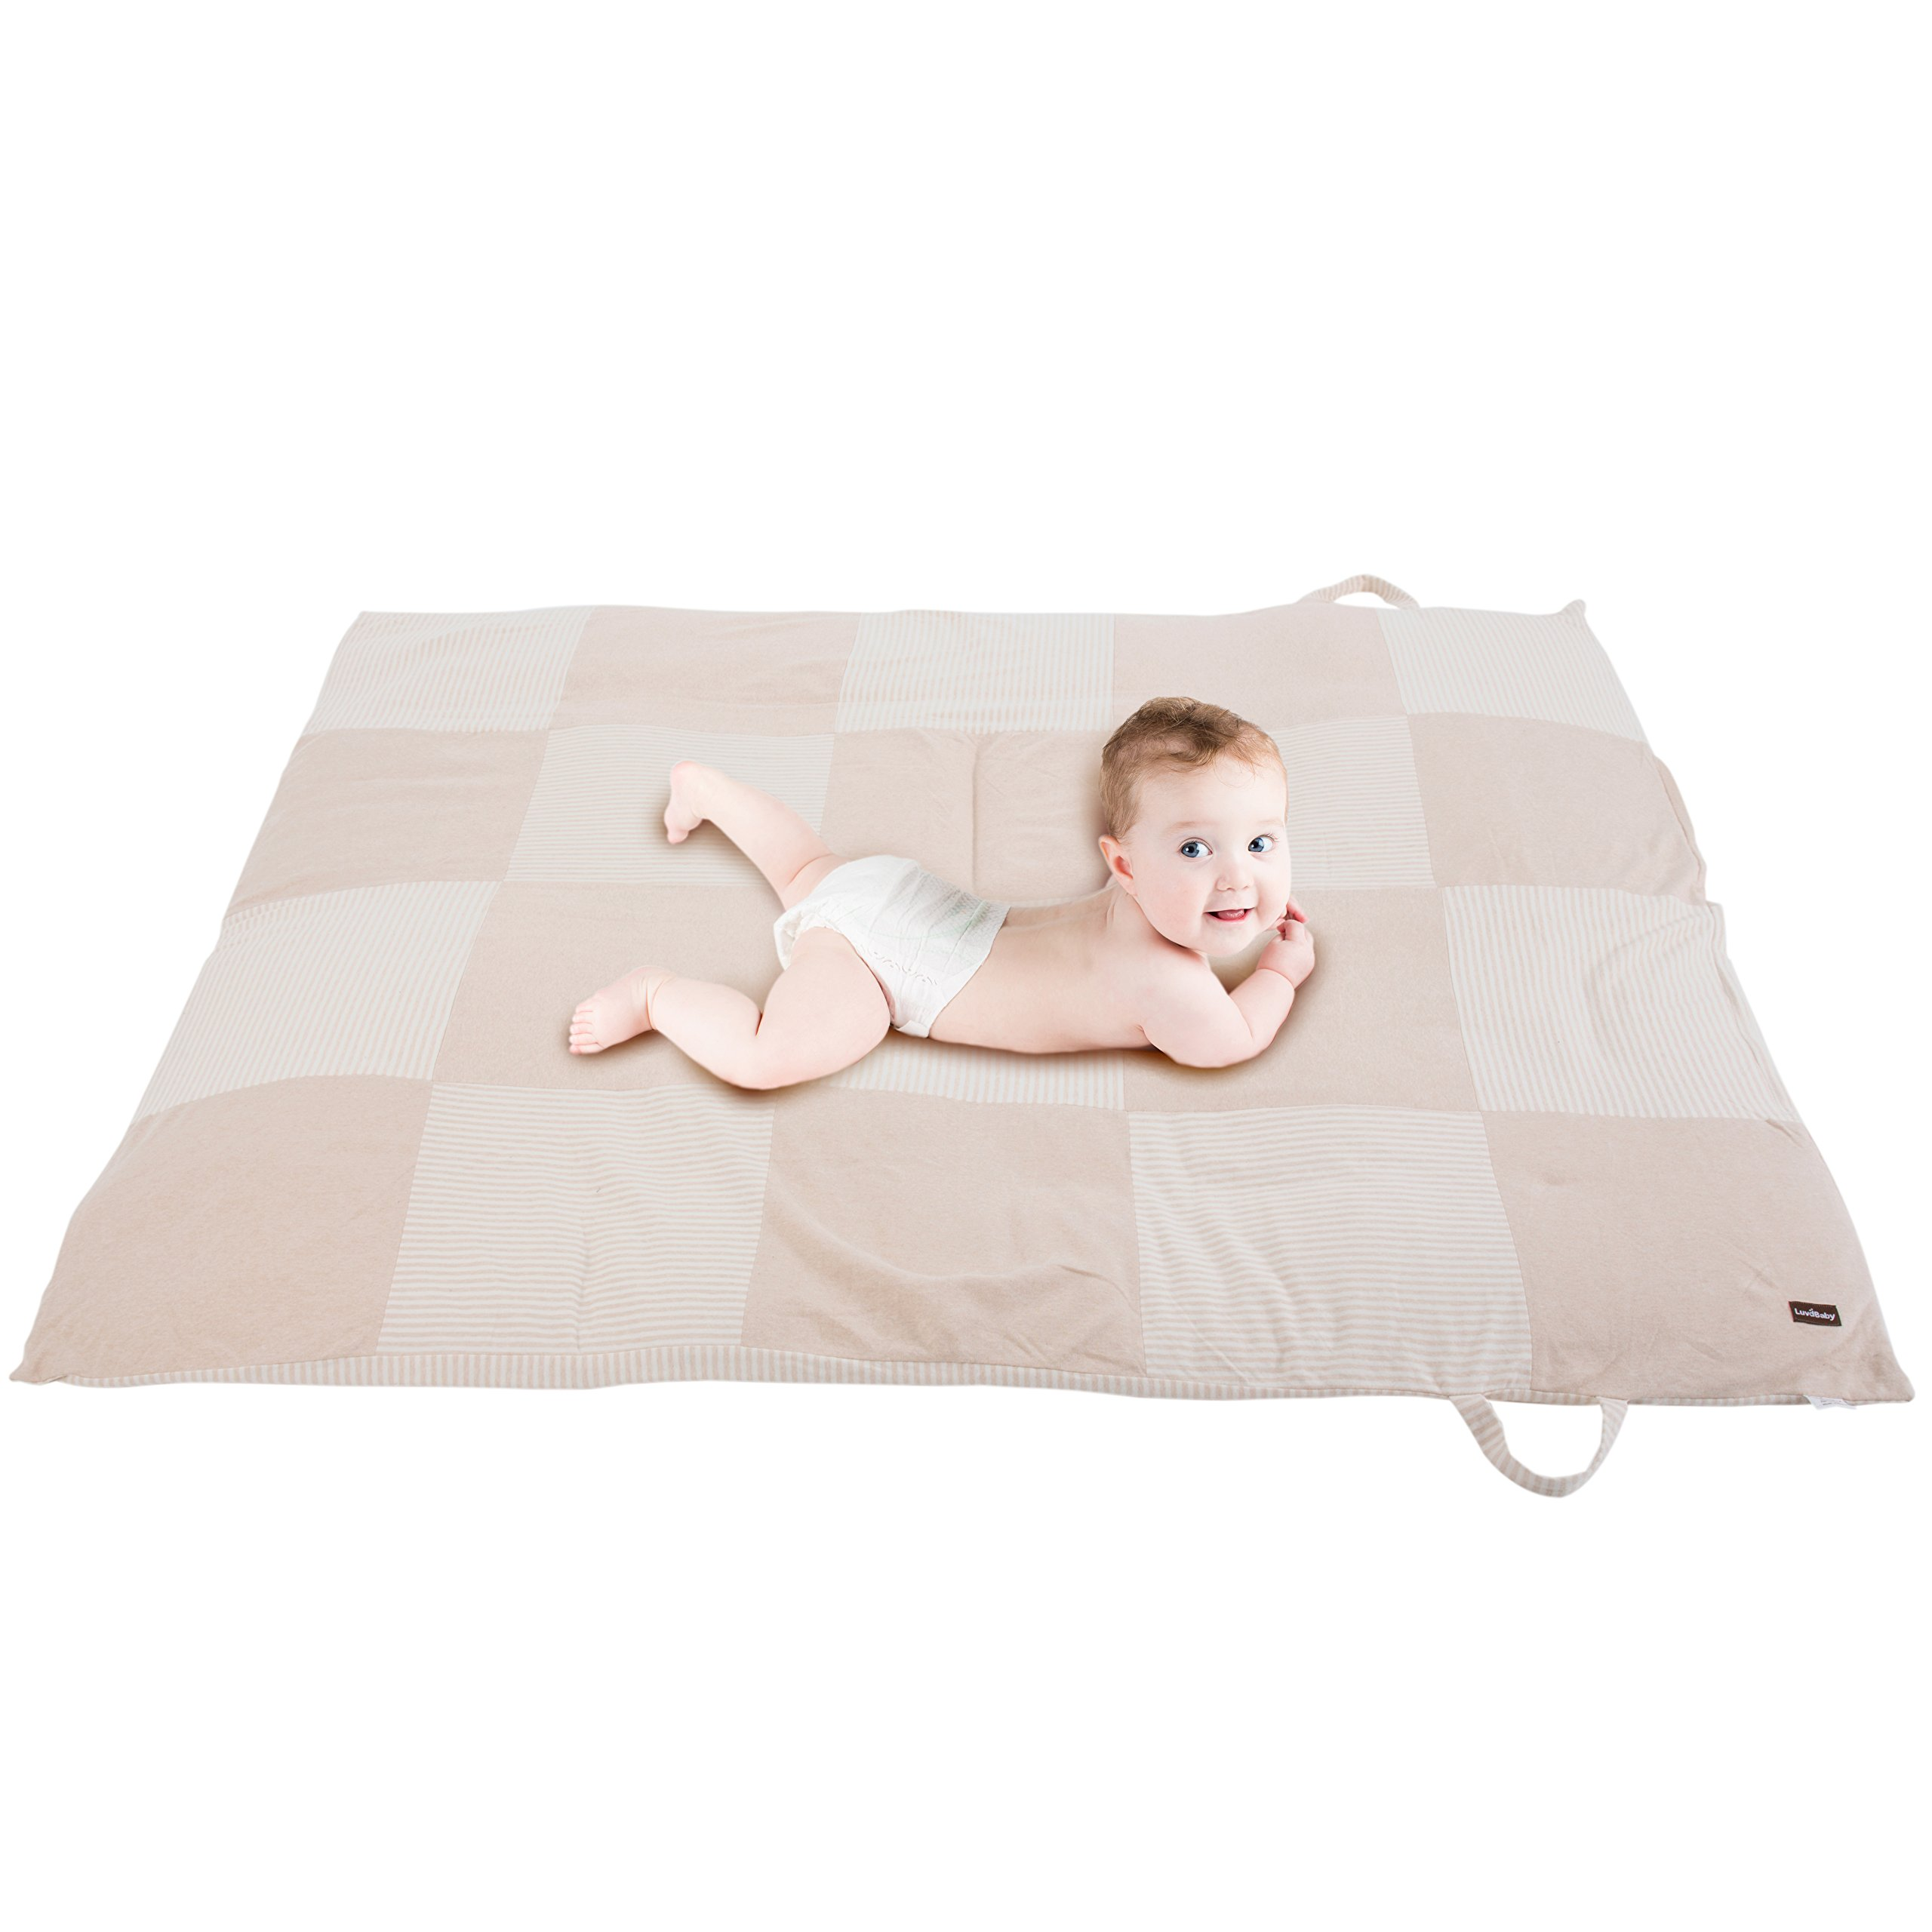 extra product large play infant mat foam toxic for weegiggles babies mats non floor